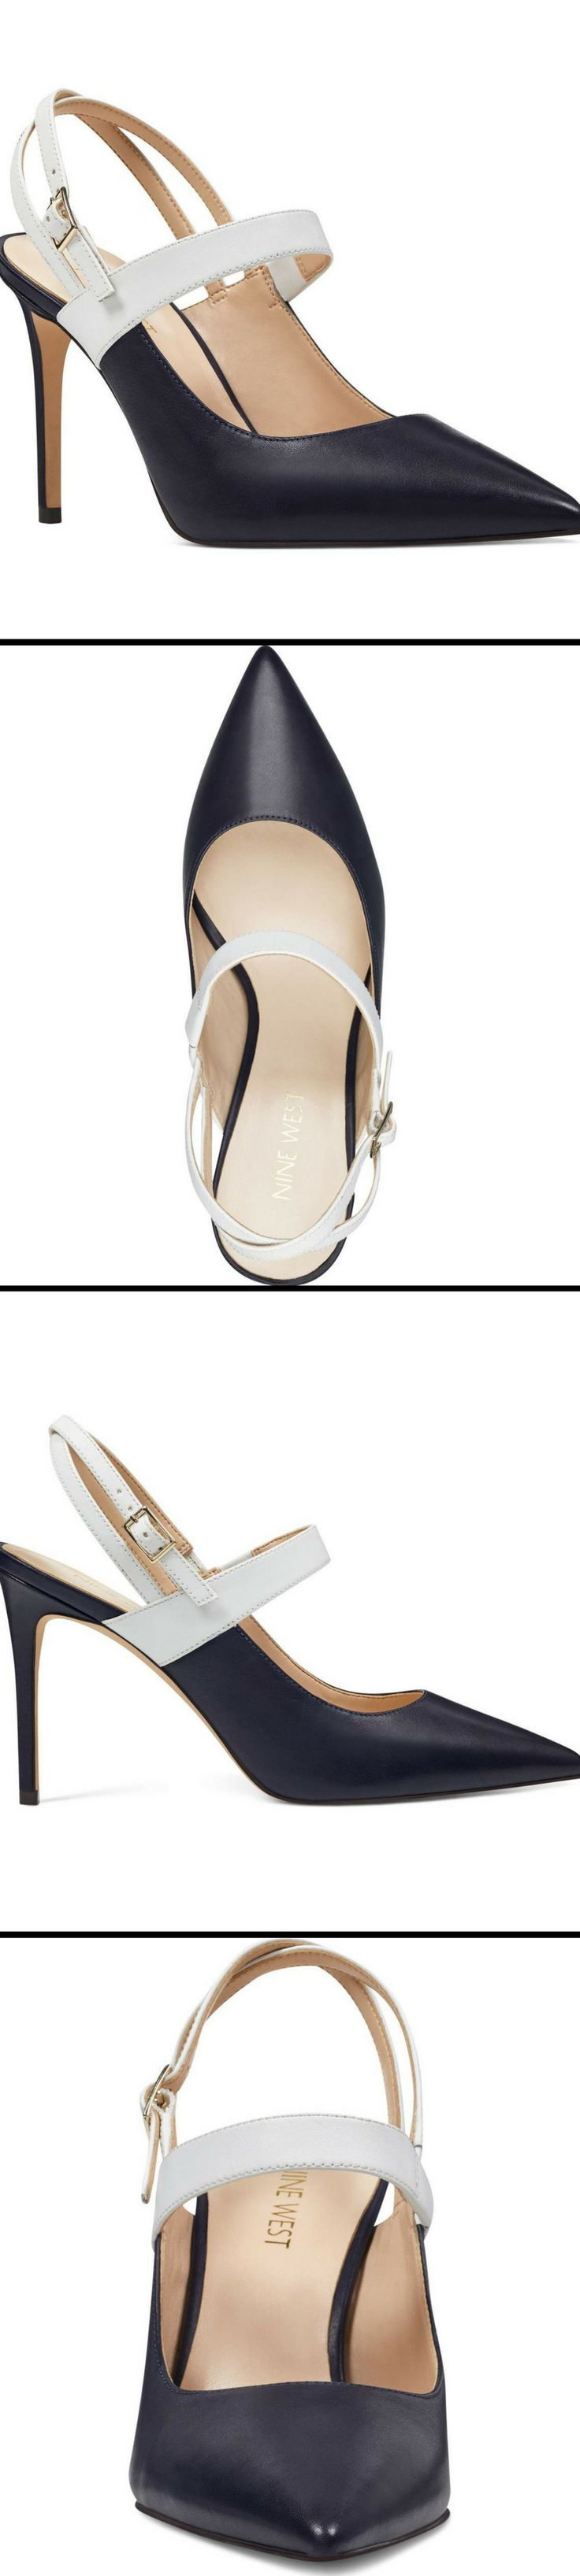 A slim heel adds leg-lengthening height to a striking pointy-toe pump in a contemporary slingback silhouette. Tabbae Slingback Pump from Nine West. #SlingbackPumps #NineWest #affiliate #ShoeLove #GiftsForHer